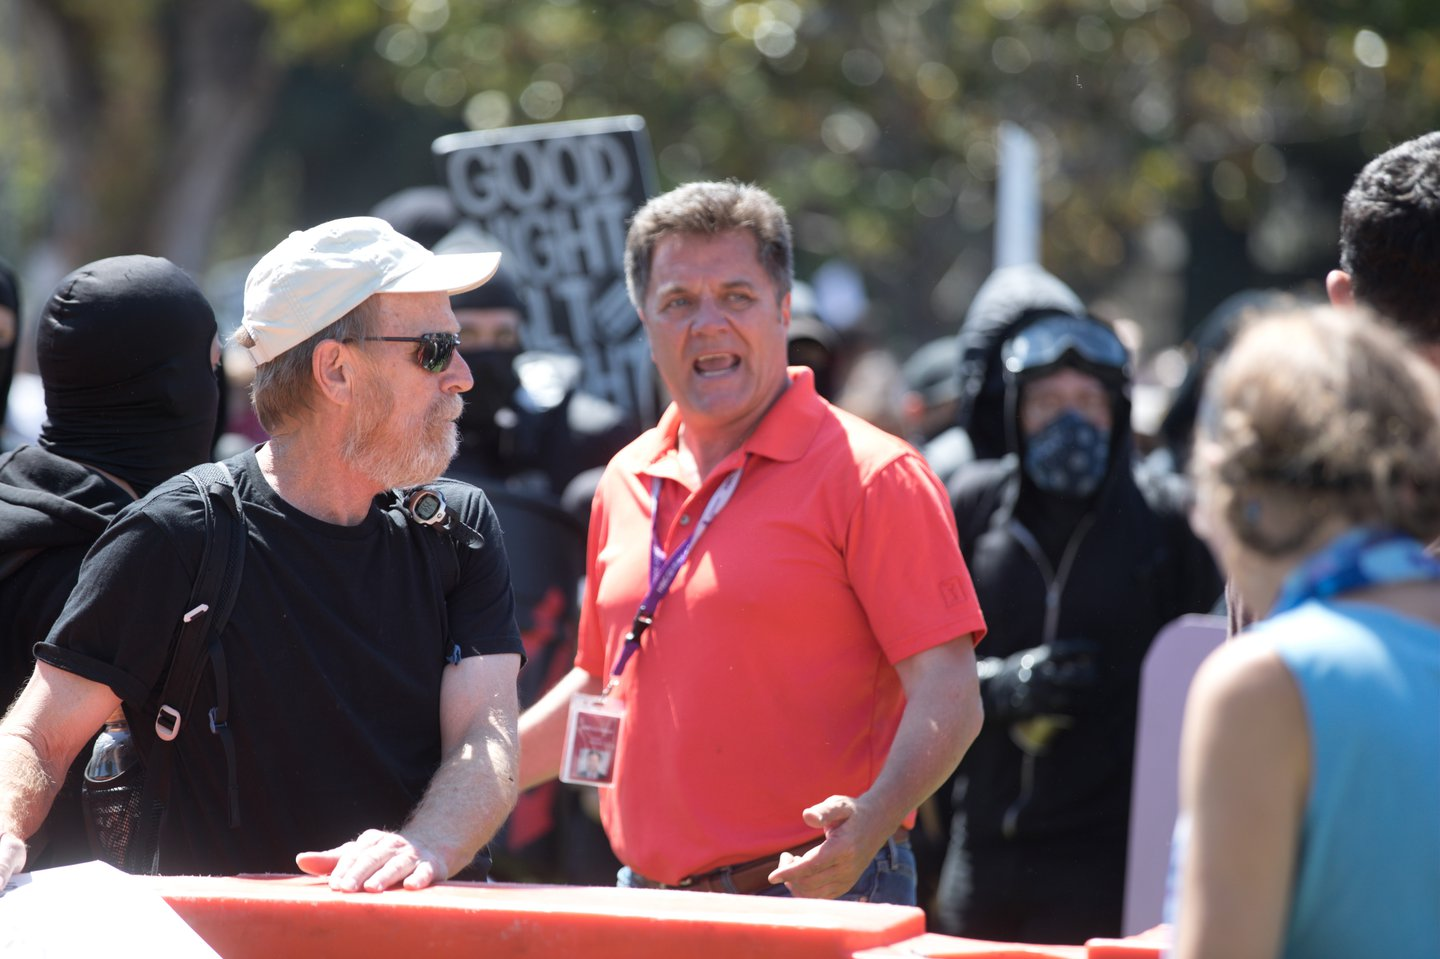 Thom Jensen argues with protesters